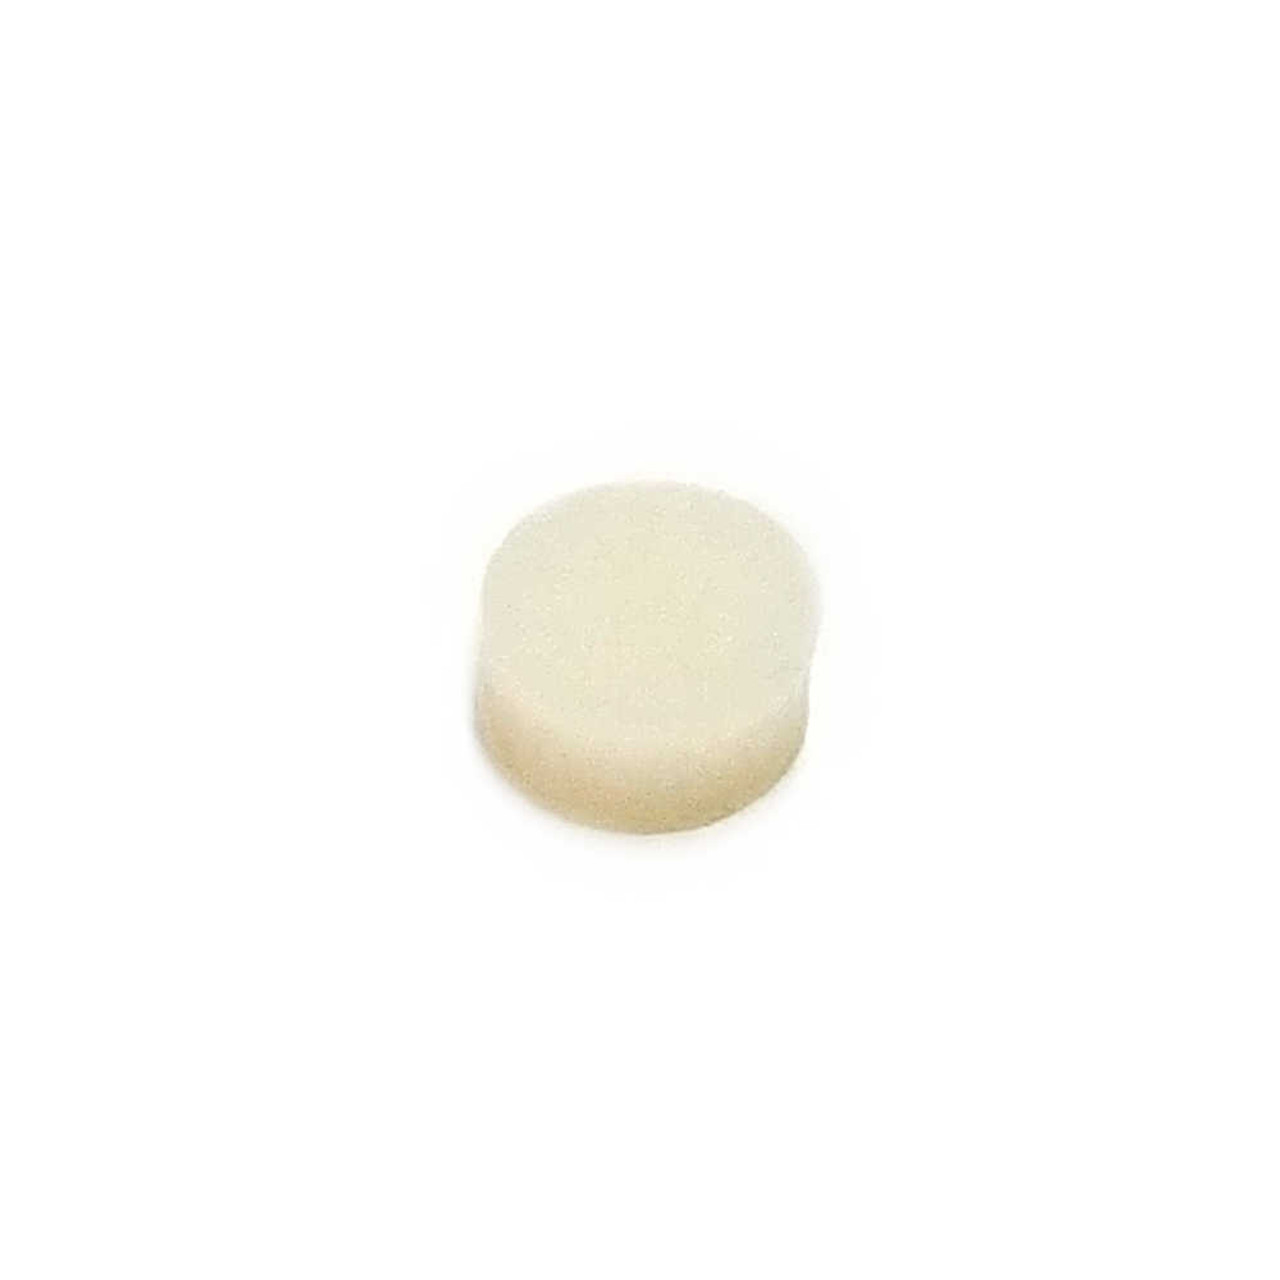 Inlay Dots - 6mm White (pkg 50) CLEARANCE